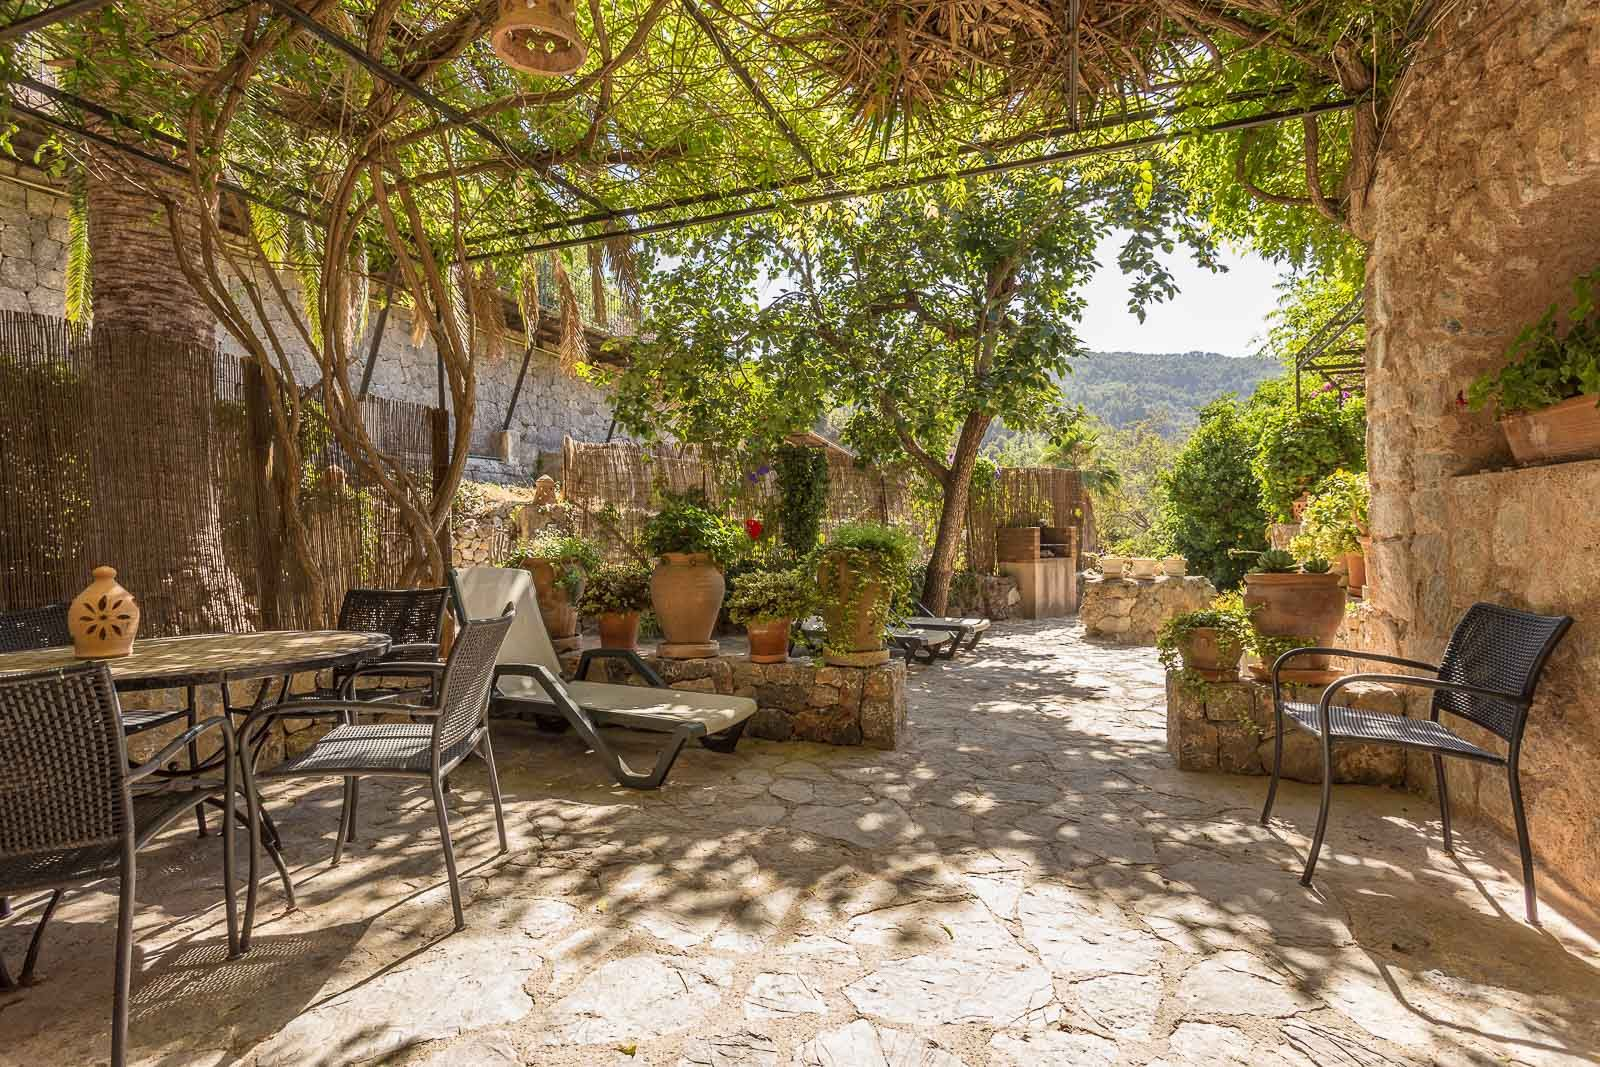 Property For Sale In Deia, Mallorca. Charles Marlow is an